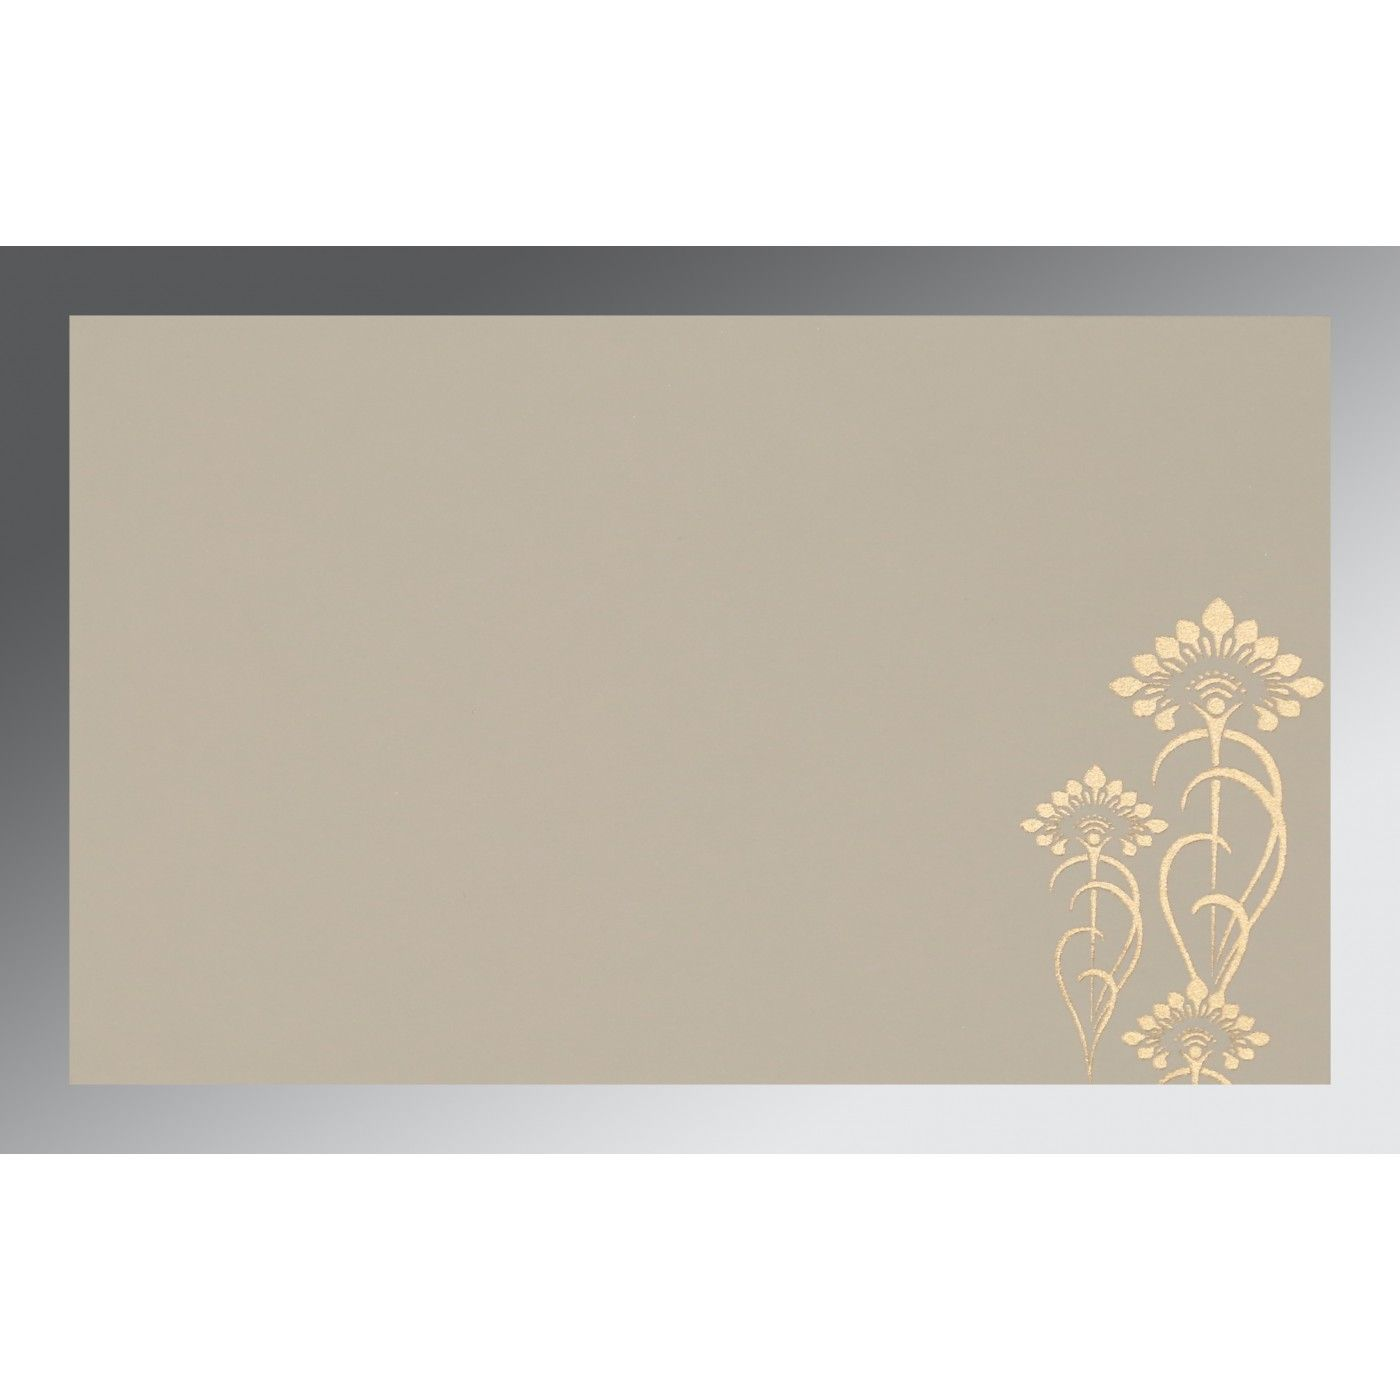 IVORY SHIMMERY SCREEN PRINTED WEDDING CARD : CRU-8239K - IndianWeddingCards